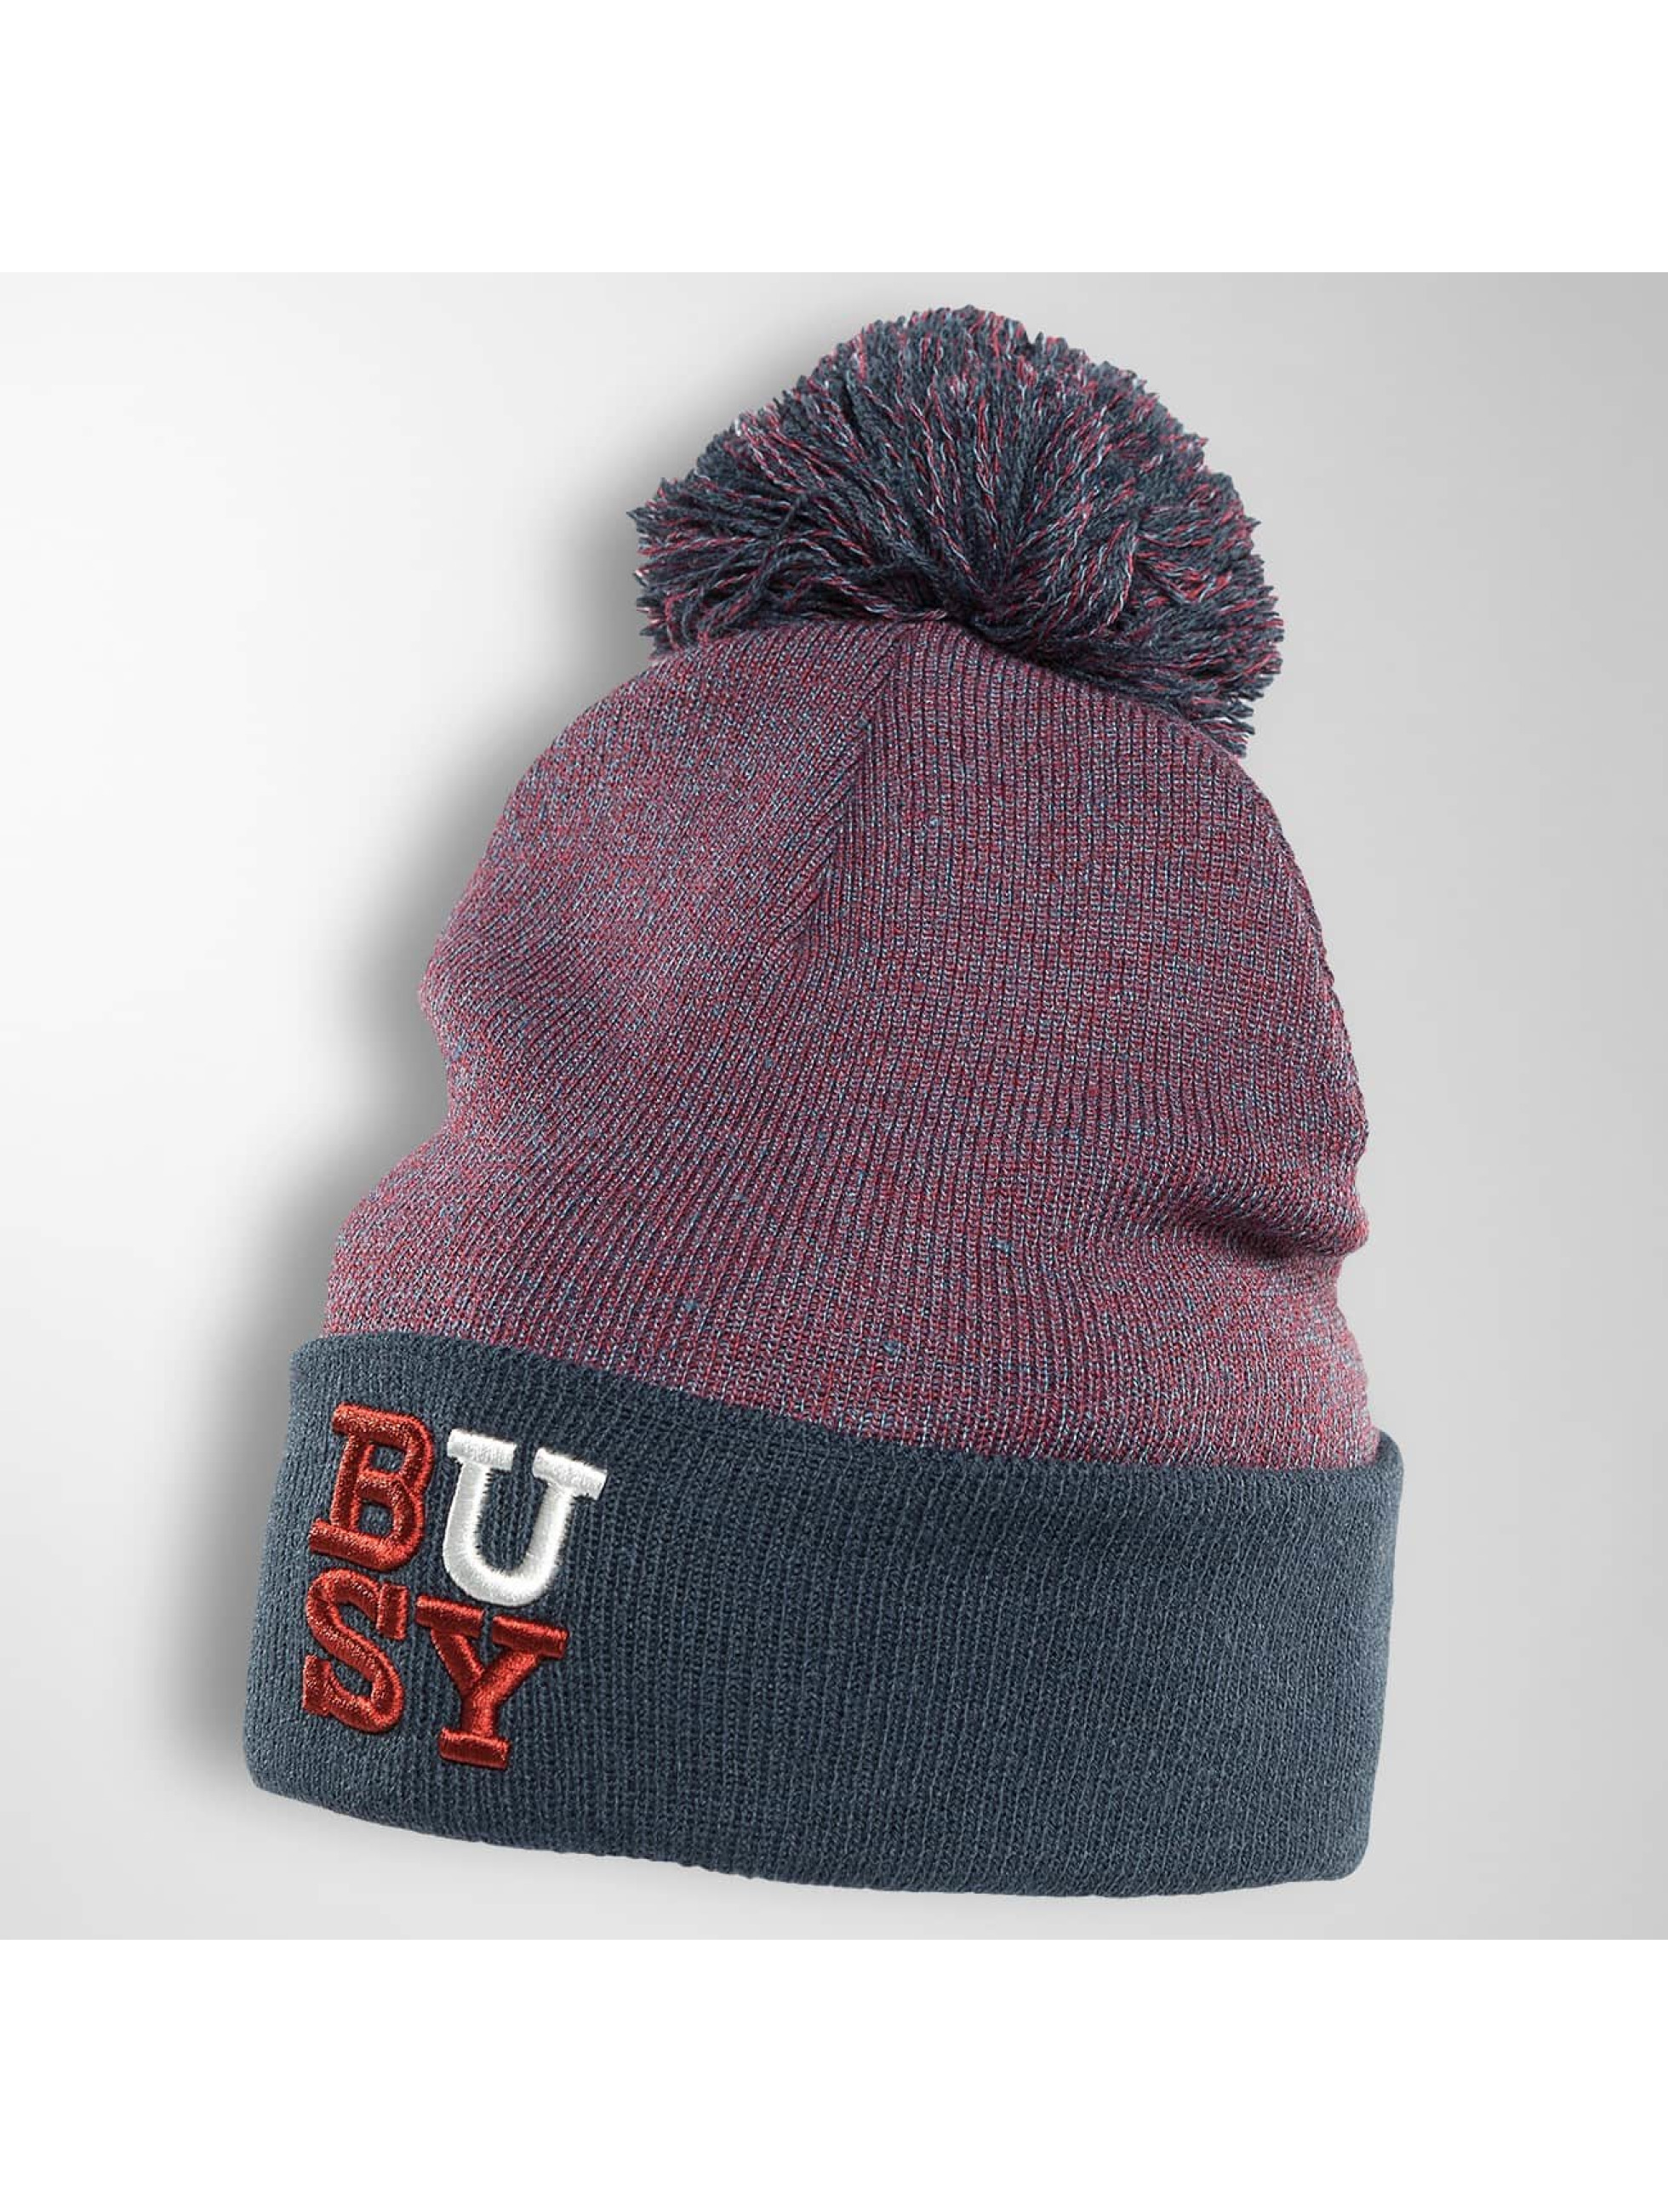 TrueSpin Hat-1 4 Letters red